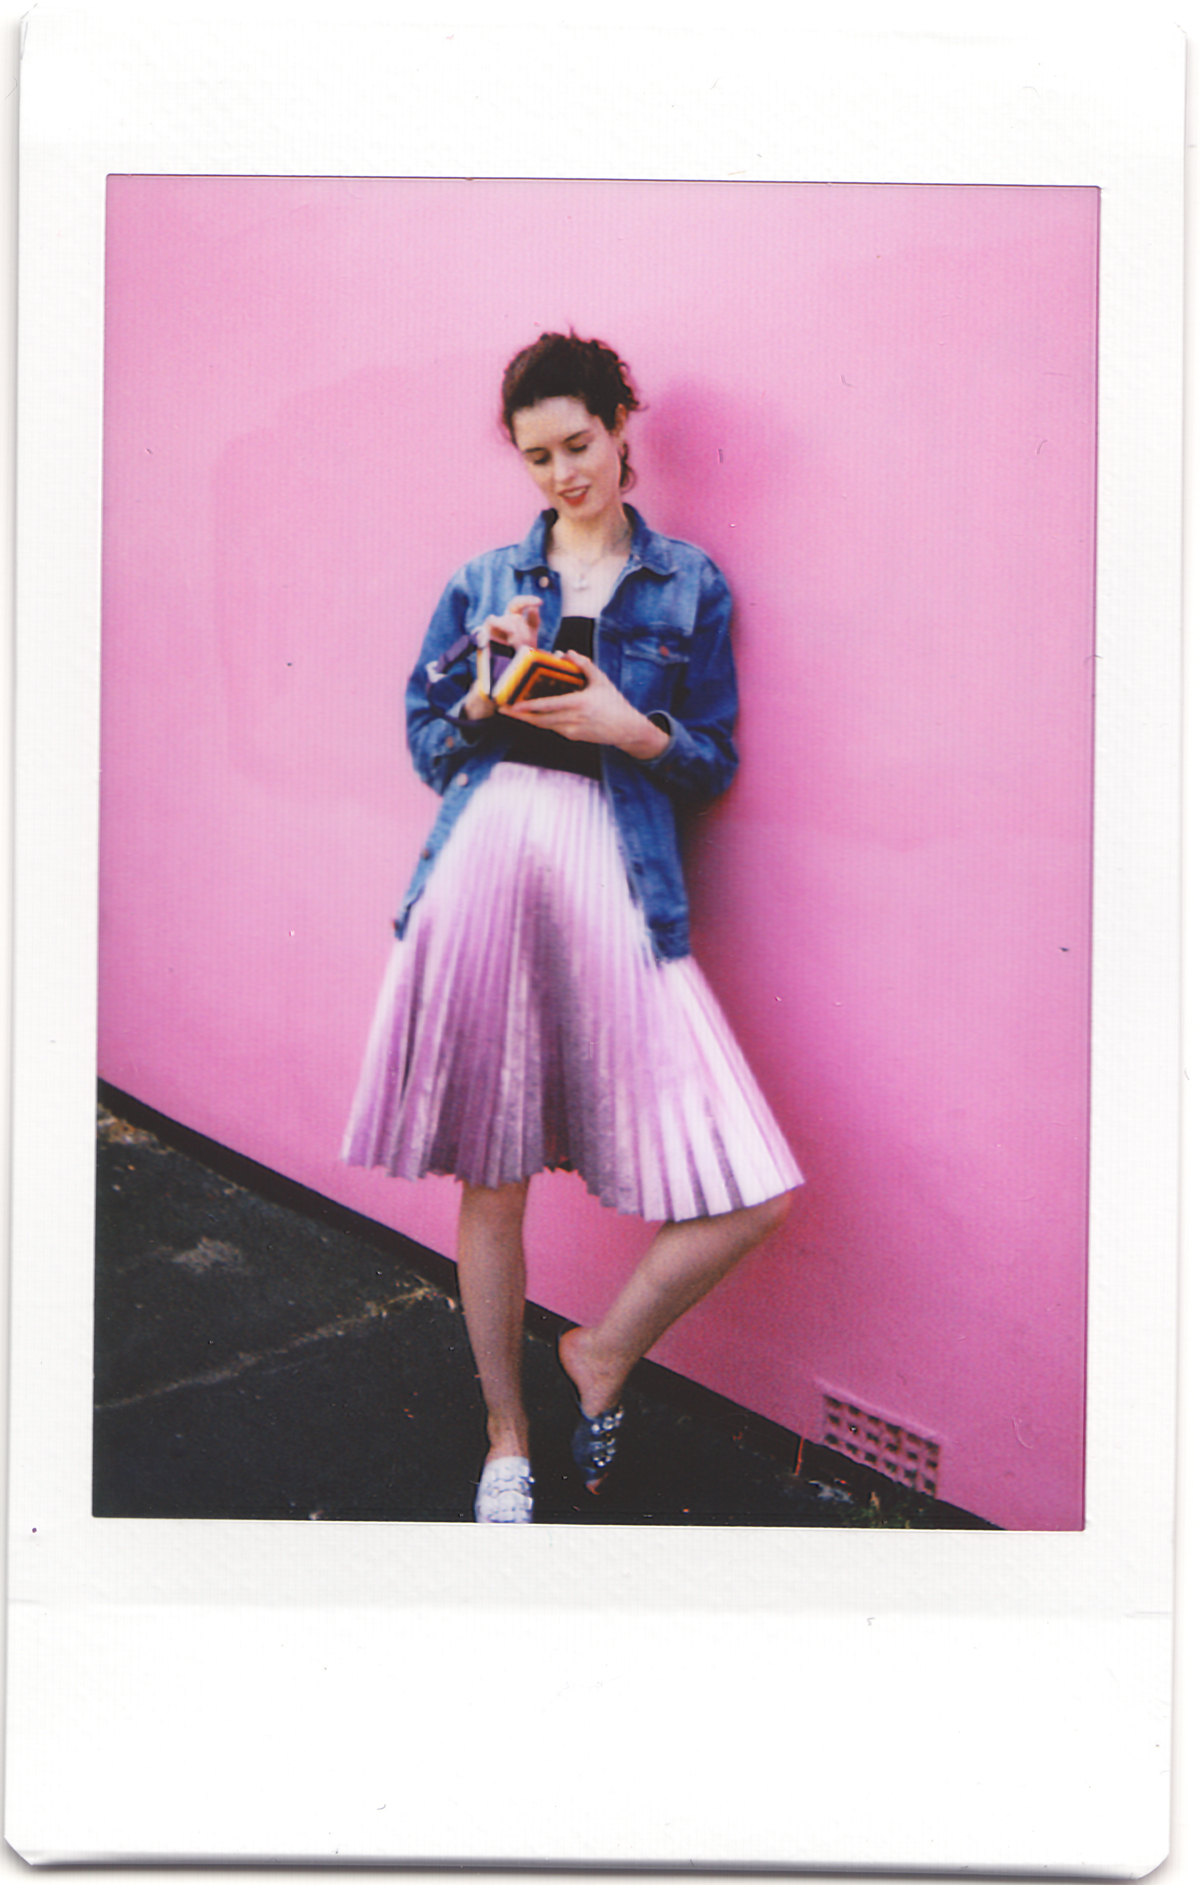 Street Style shot with a Leica Sofort instant camera